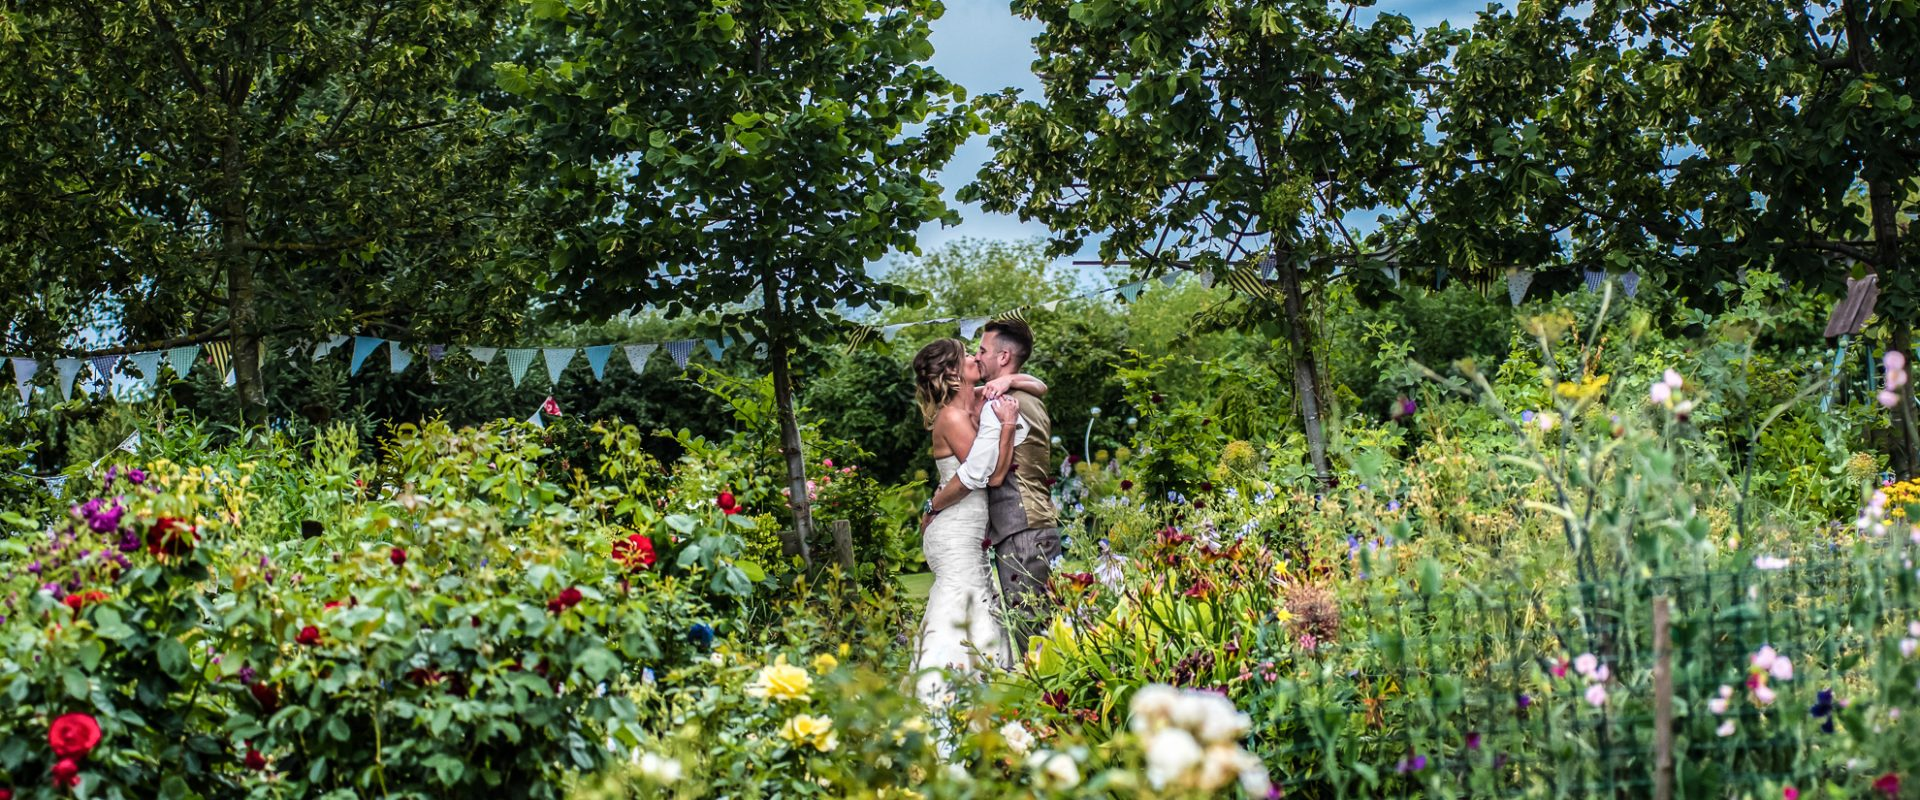 Bride and groom kissing amongst beautiful foliage in floral media